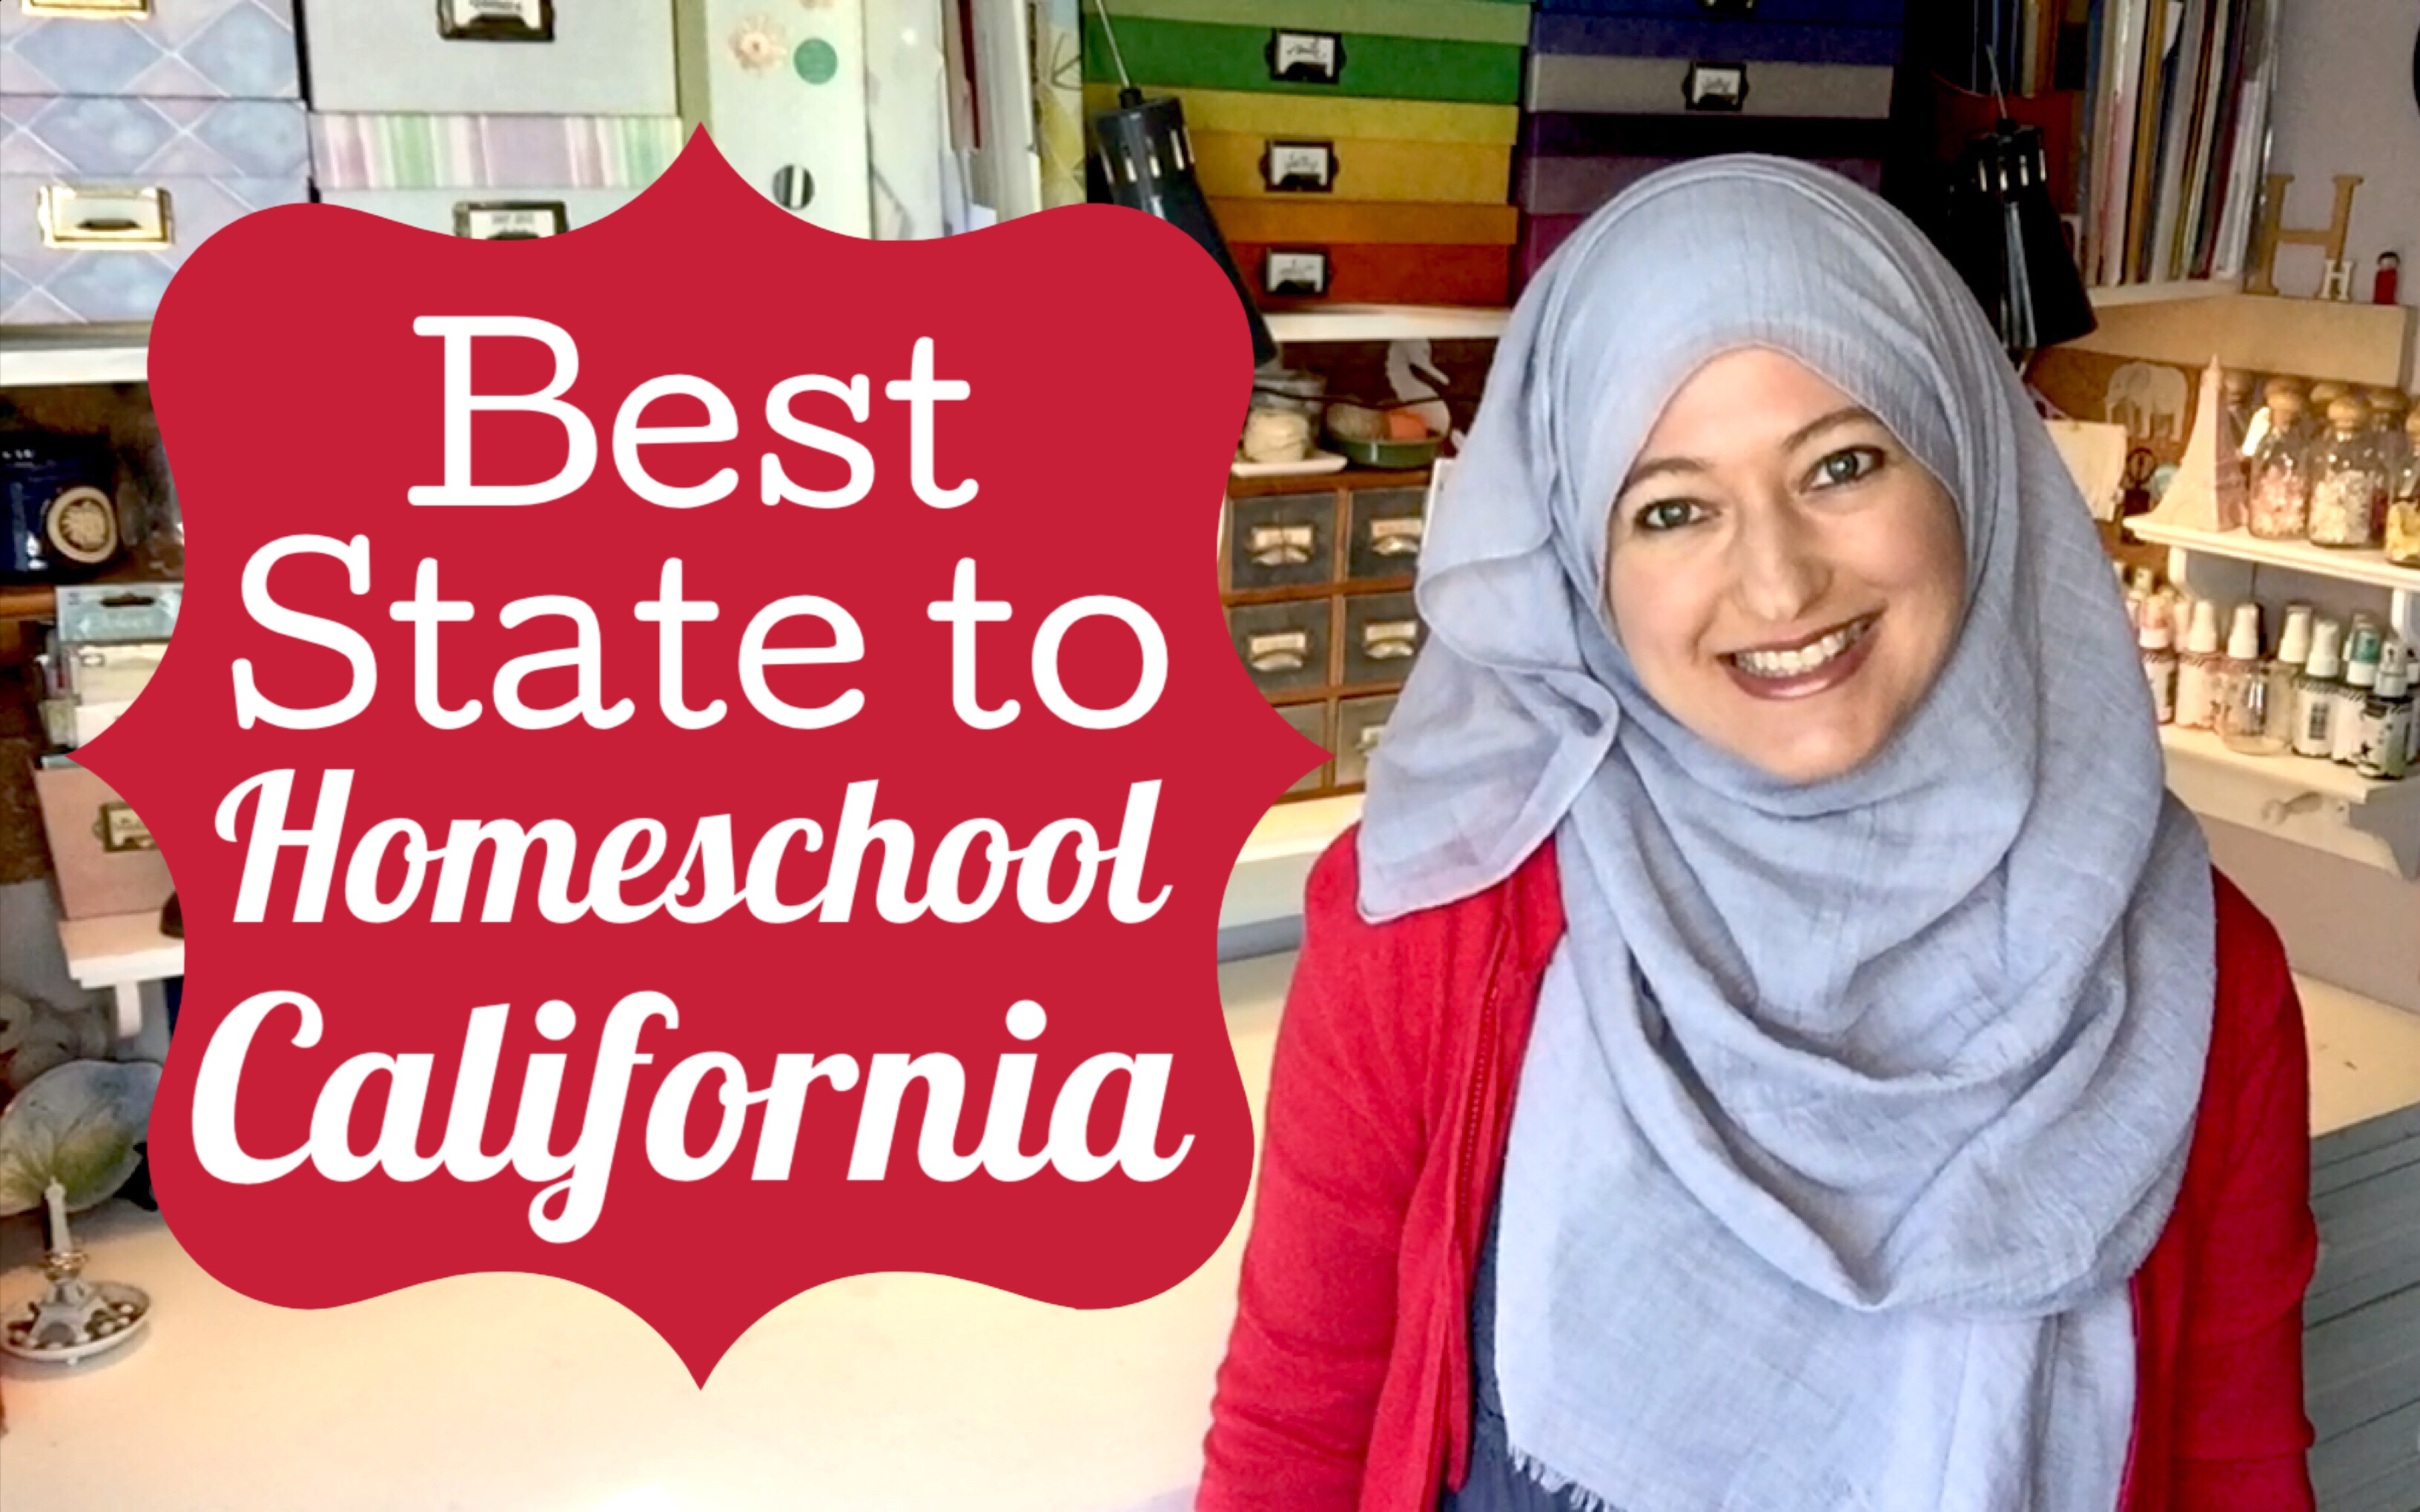 BEST STATE TO HOMESCHOOL | CALIFORNIA